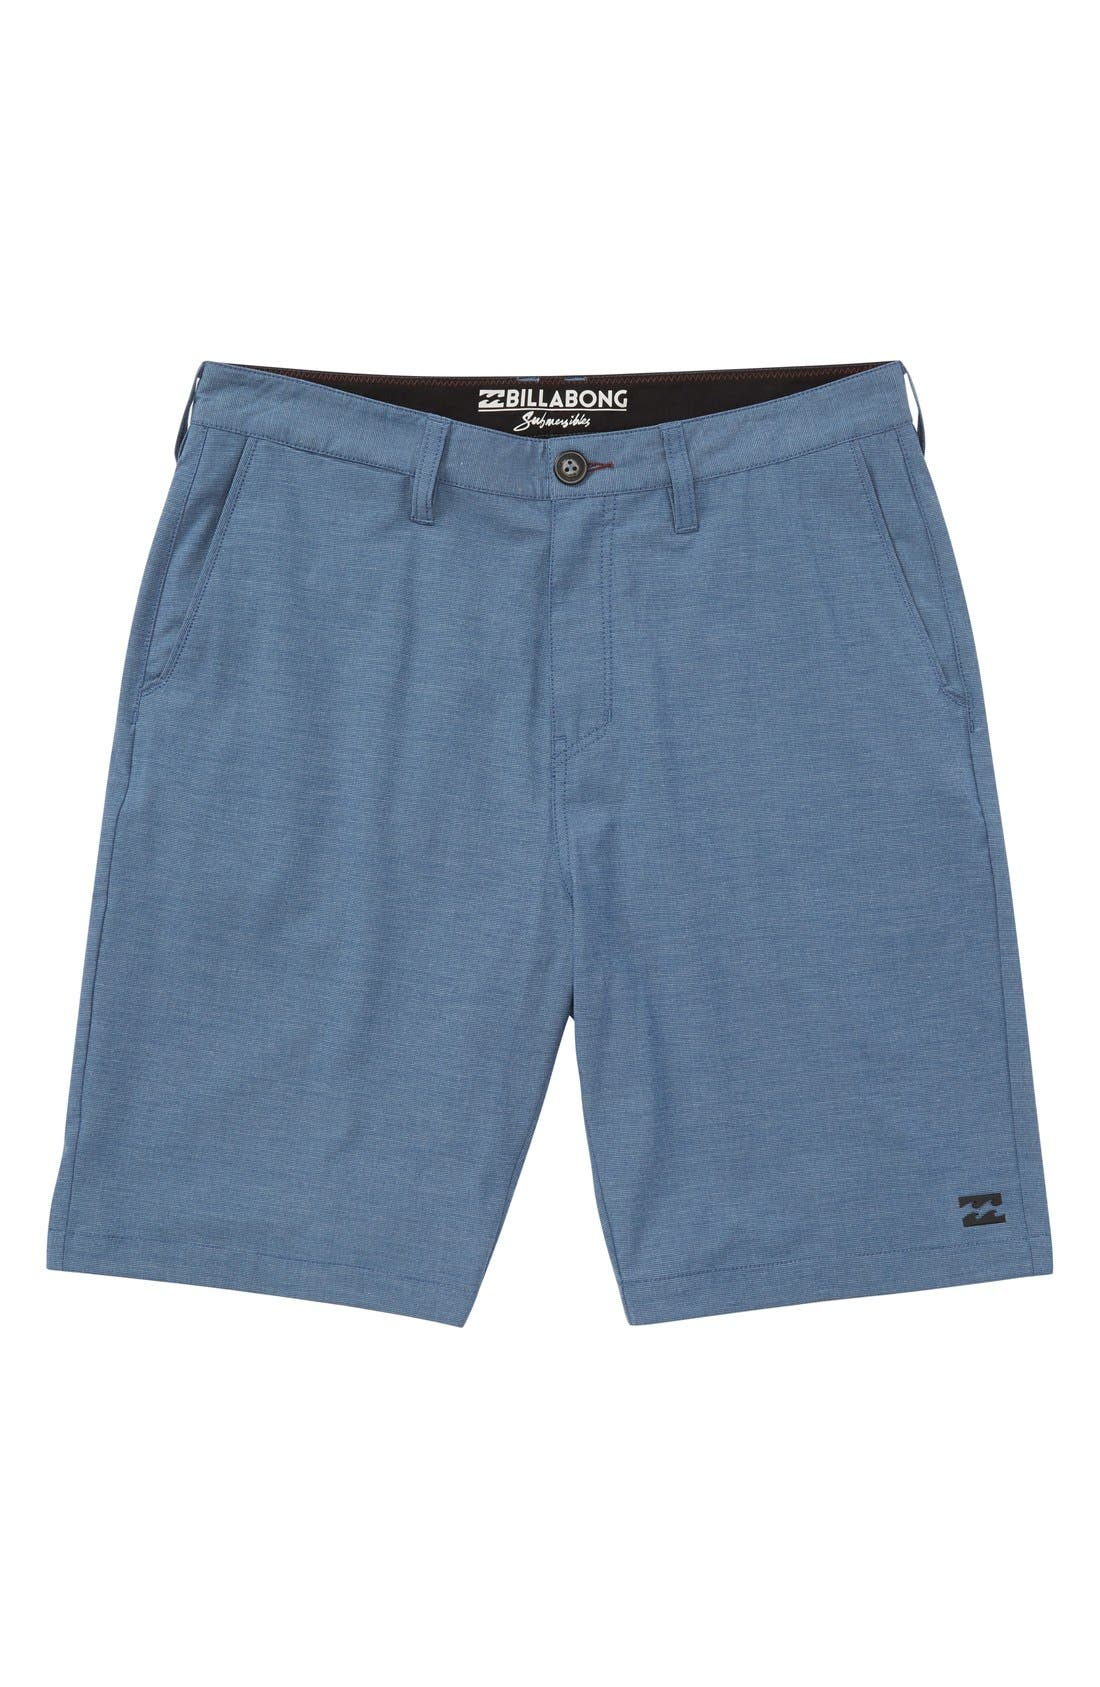 Crossfire X Submersible Hybrid Shorts,                             Main thumbnail 9, color,